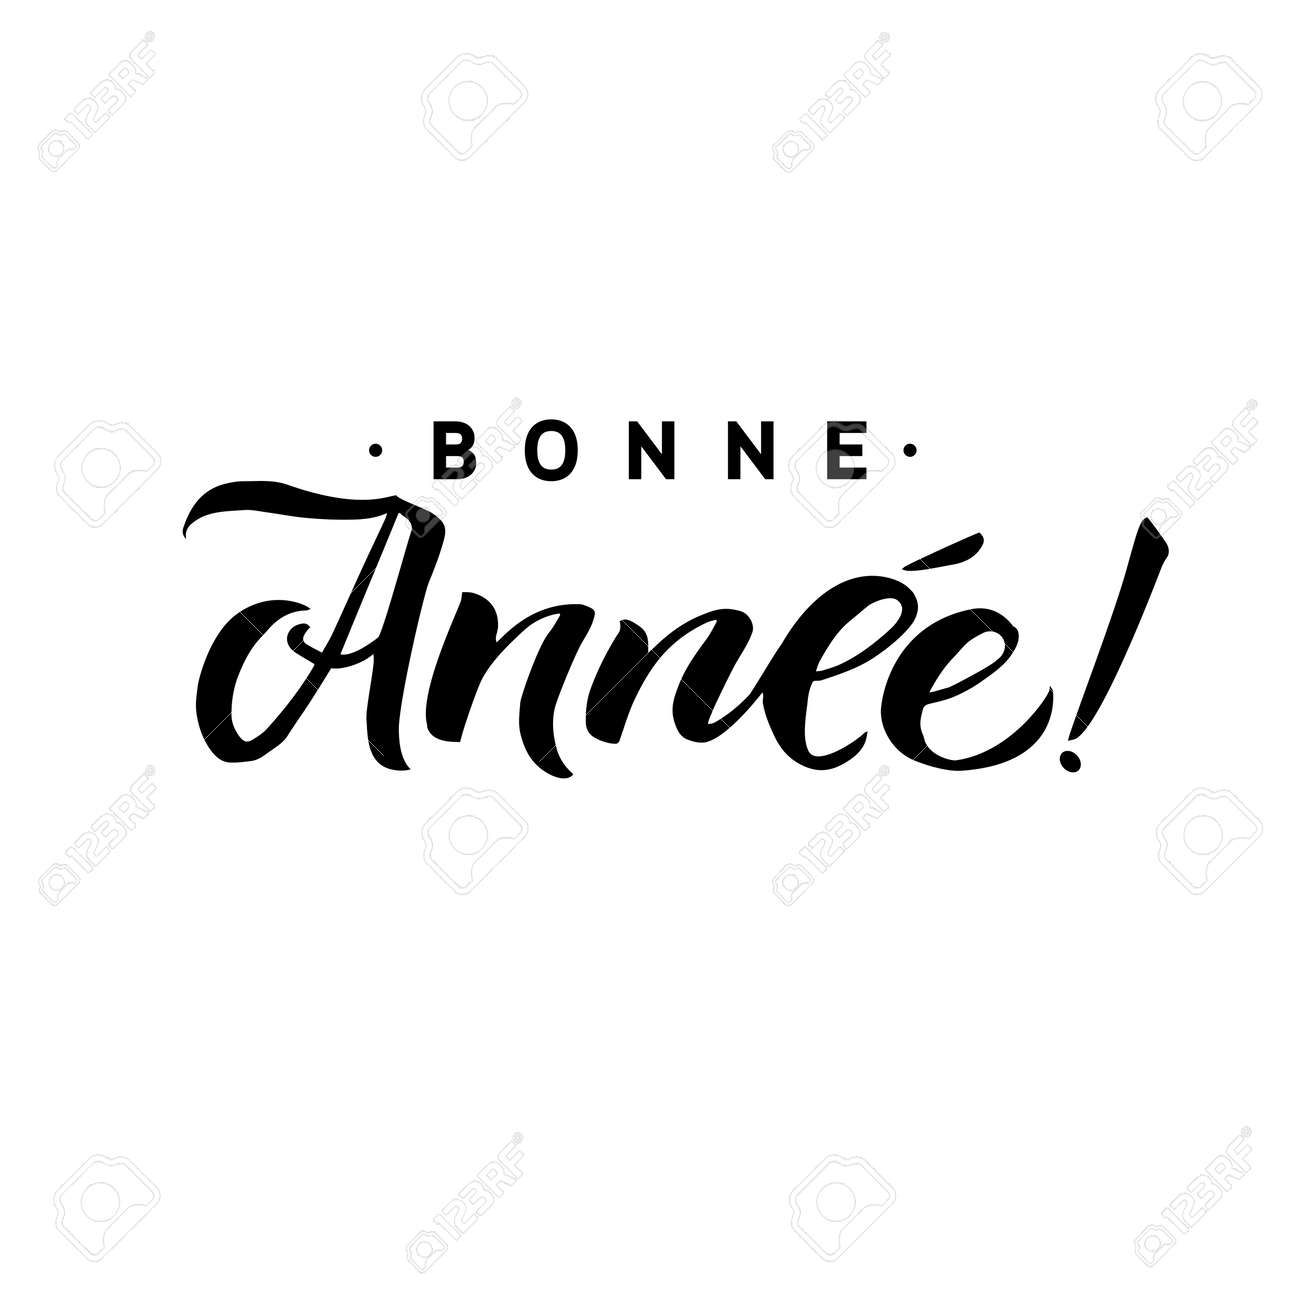 Bonne annee happy new year calligraphy in french greeting card happy new year calligraphy in french greeting card black typography on white m4hsunfo